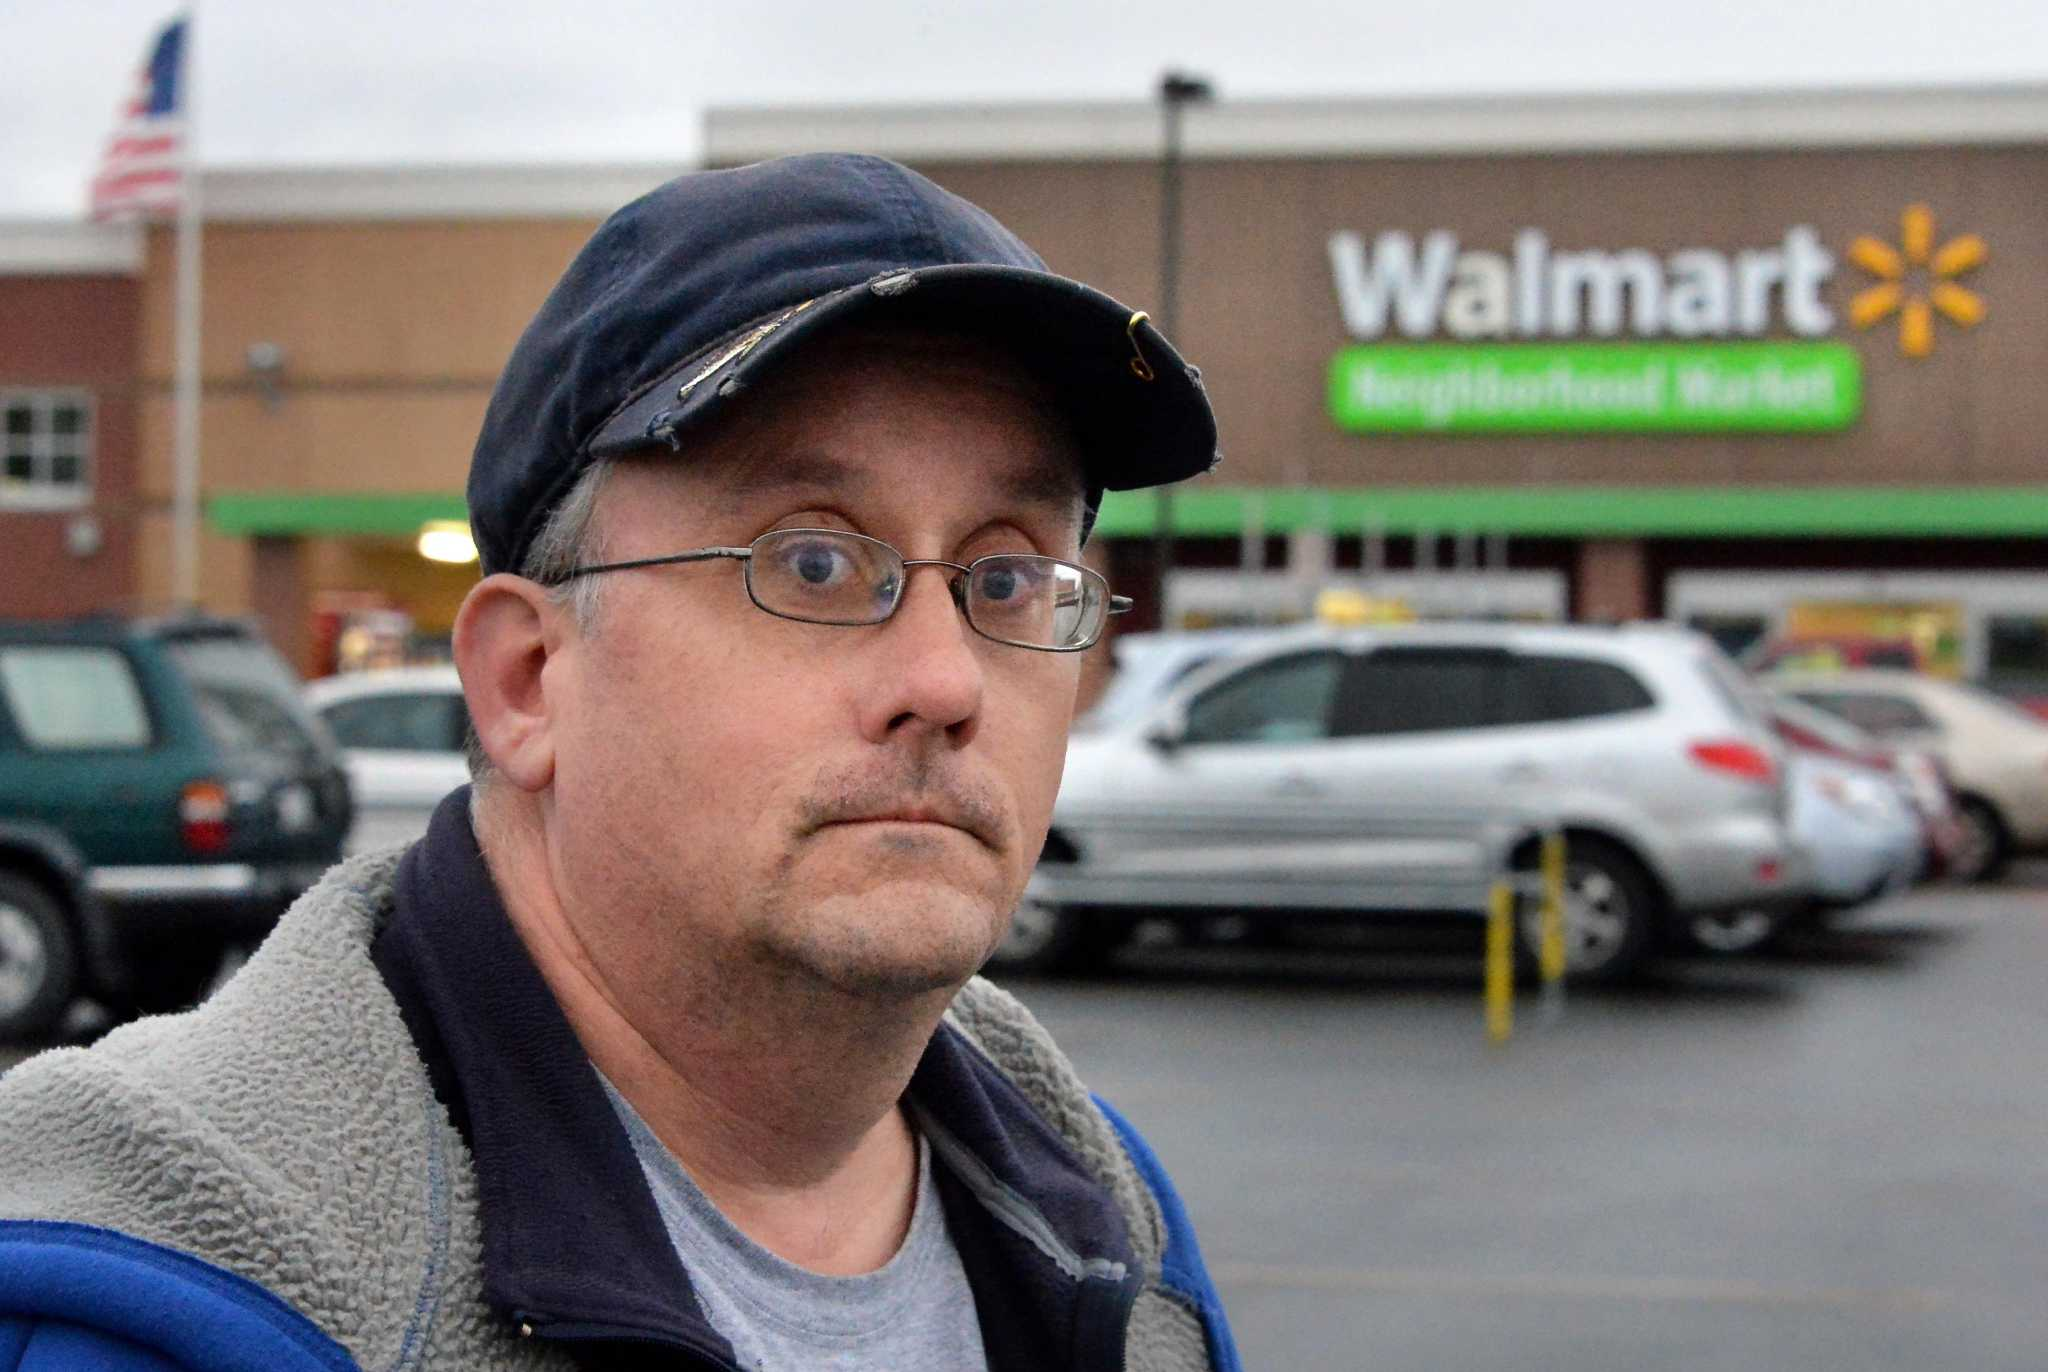 a74fe445ff2 Wal-Mart worker fired after 18 years for turning in  350 cash found in  Niskayuna store parking lot too slowly